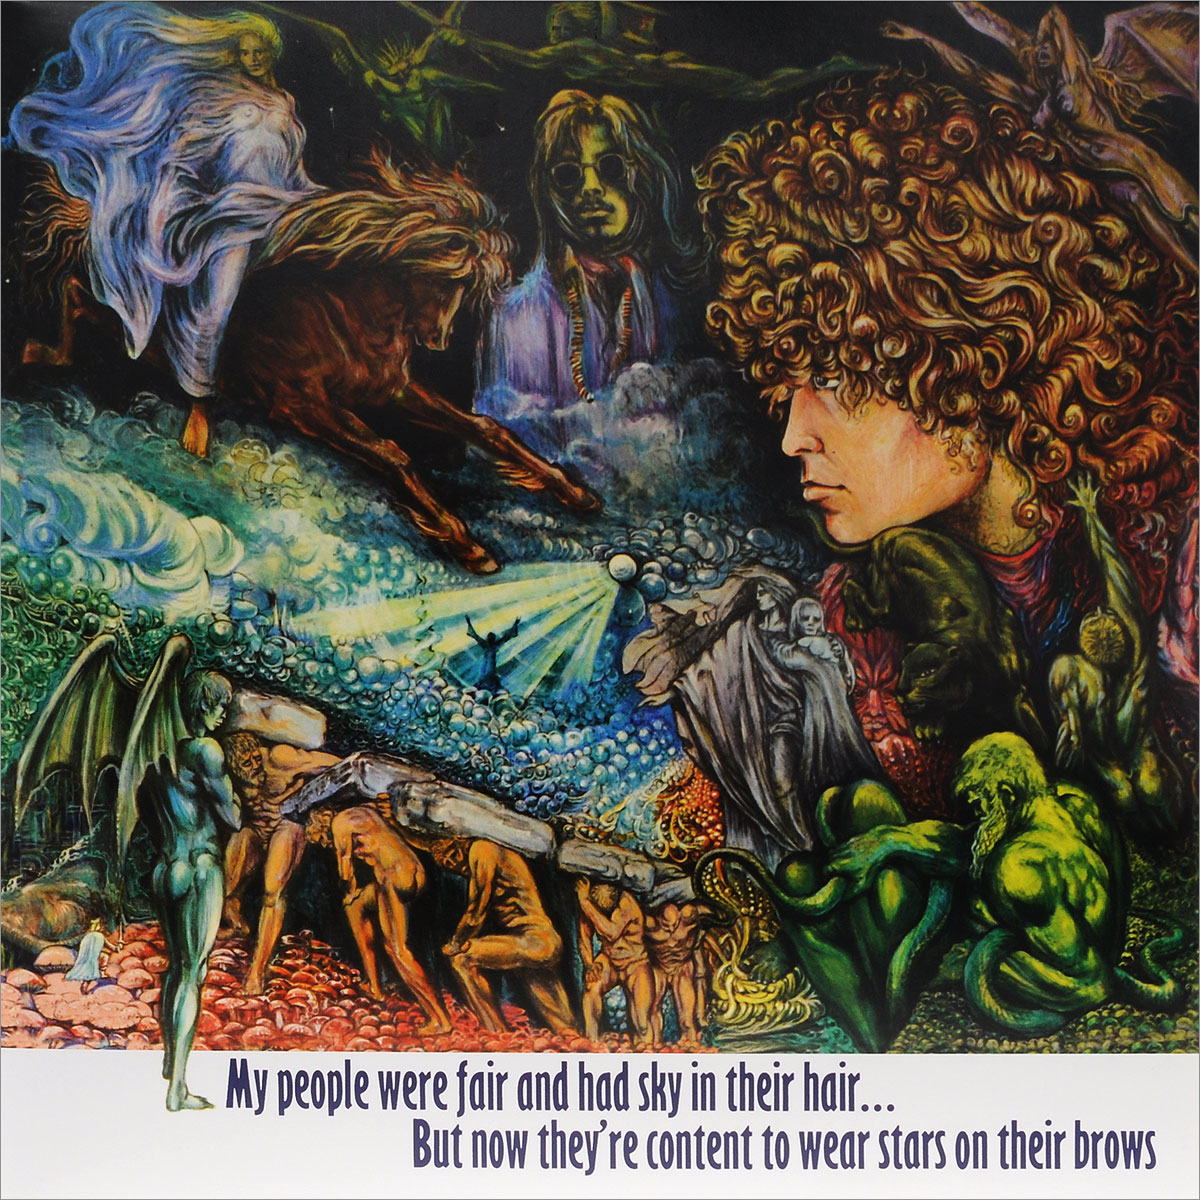 T. Rex Tyrannosaurus Rex. My People Were Fair And Had Sky In Their Hair... But Now They're Content To Wear Stars On Their Brows (2 LP) t rex t rex unicorn 2 lp